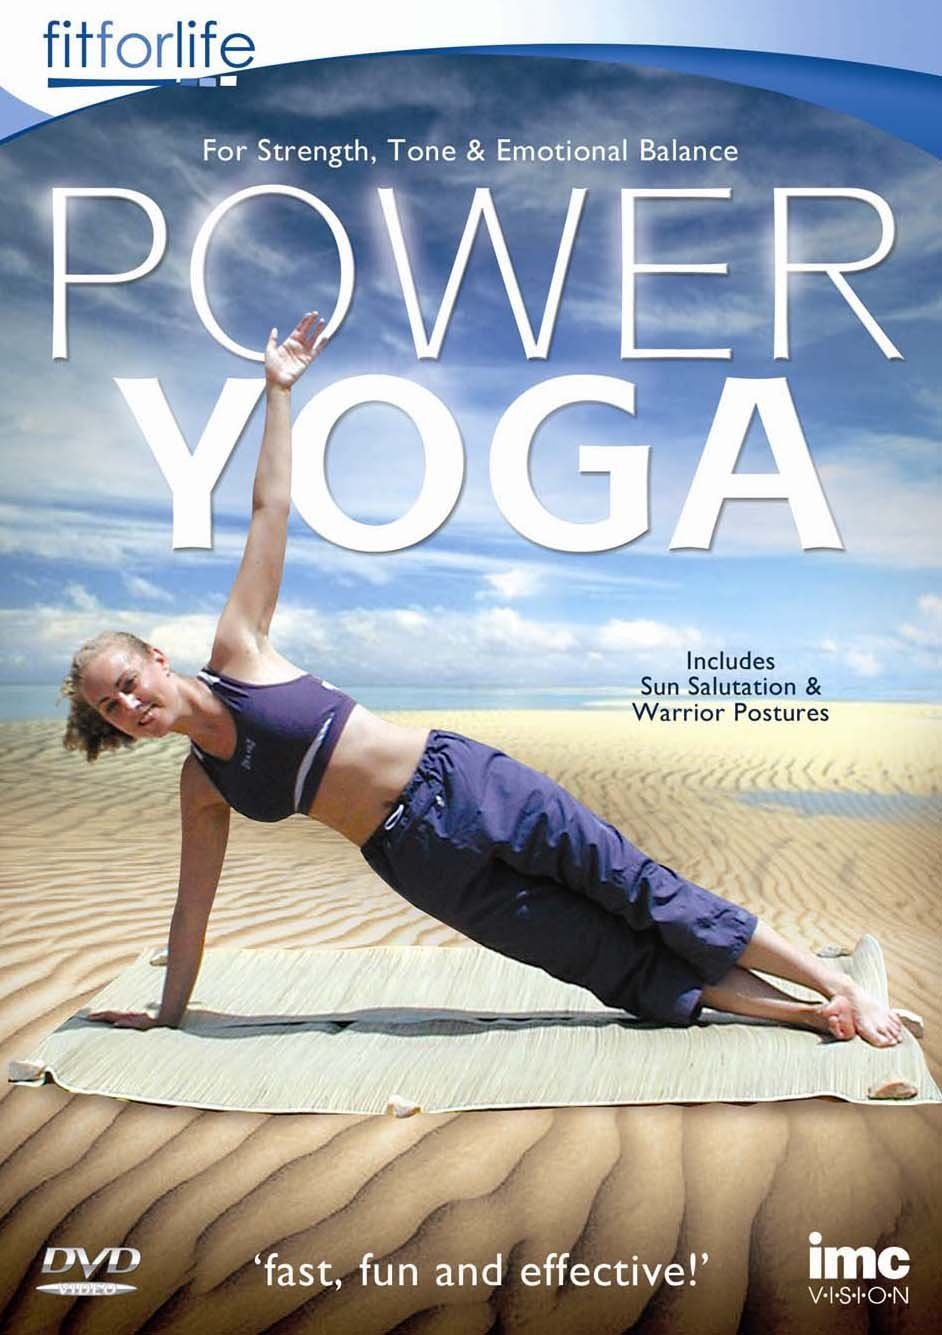 Power Yoga - Ashtanga Yoga for Strength & Toning - Fit for ...